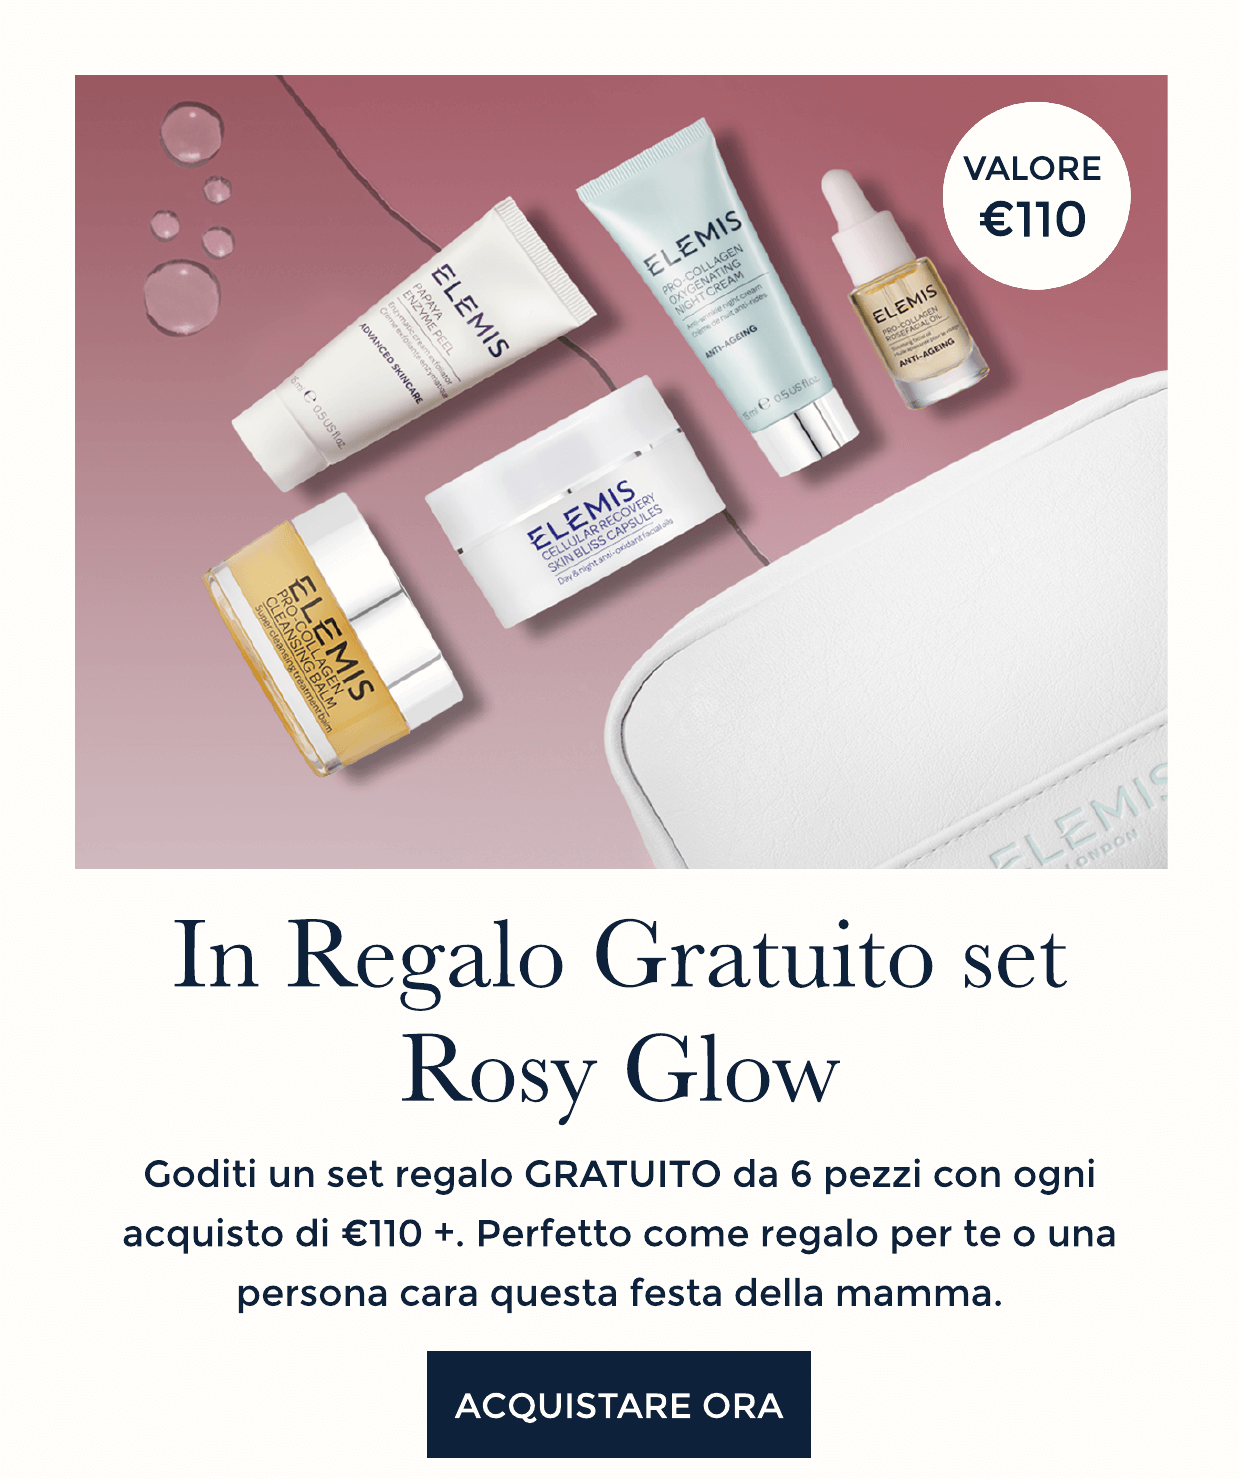 Rosy Glow Gift Set Products